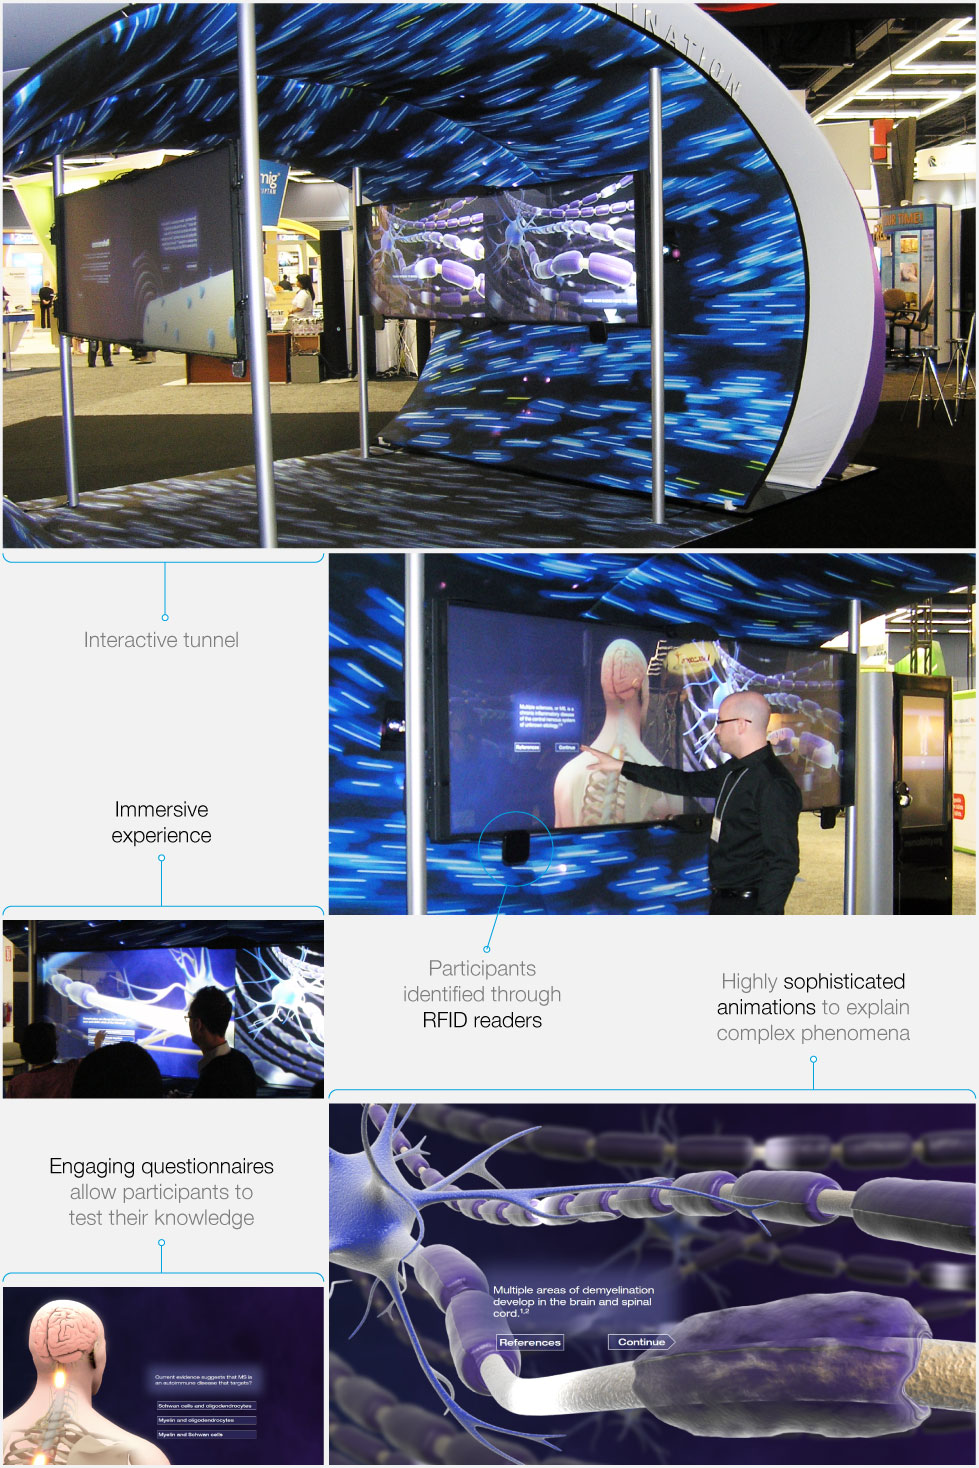 Trade show data collection in an interactive tunnel